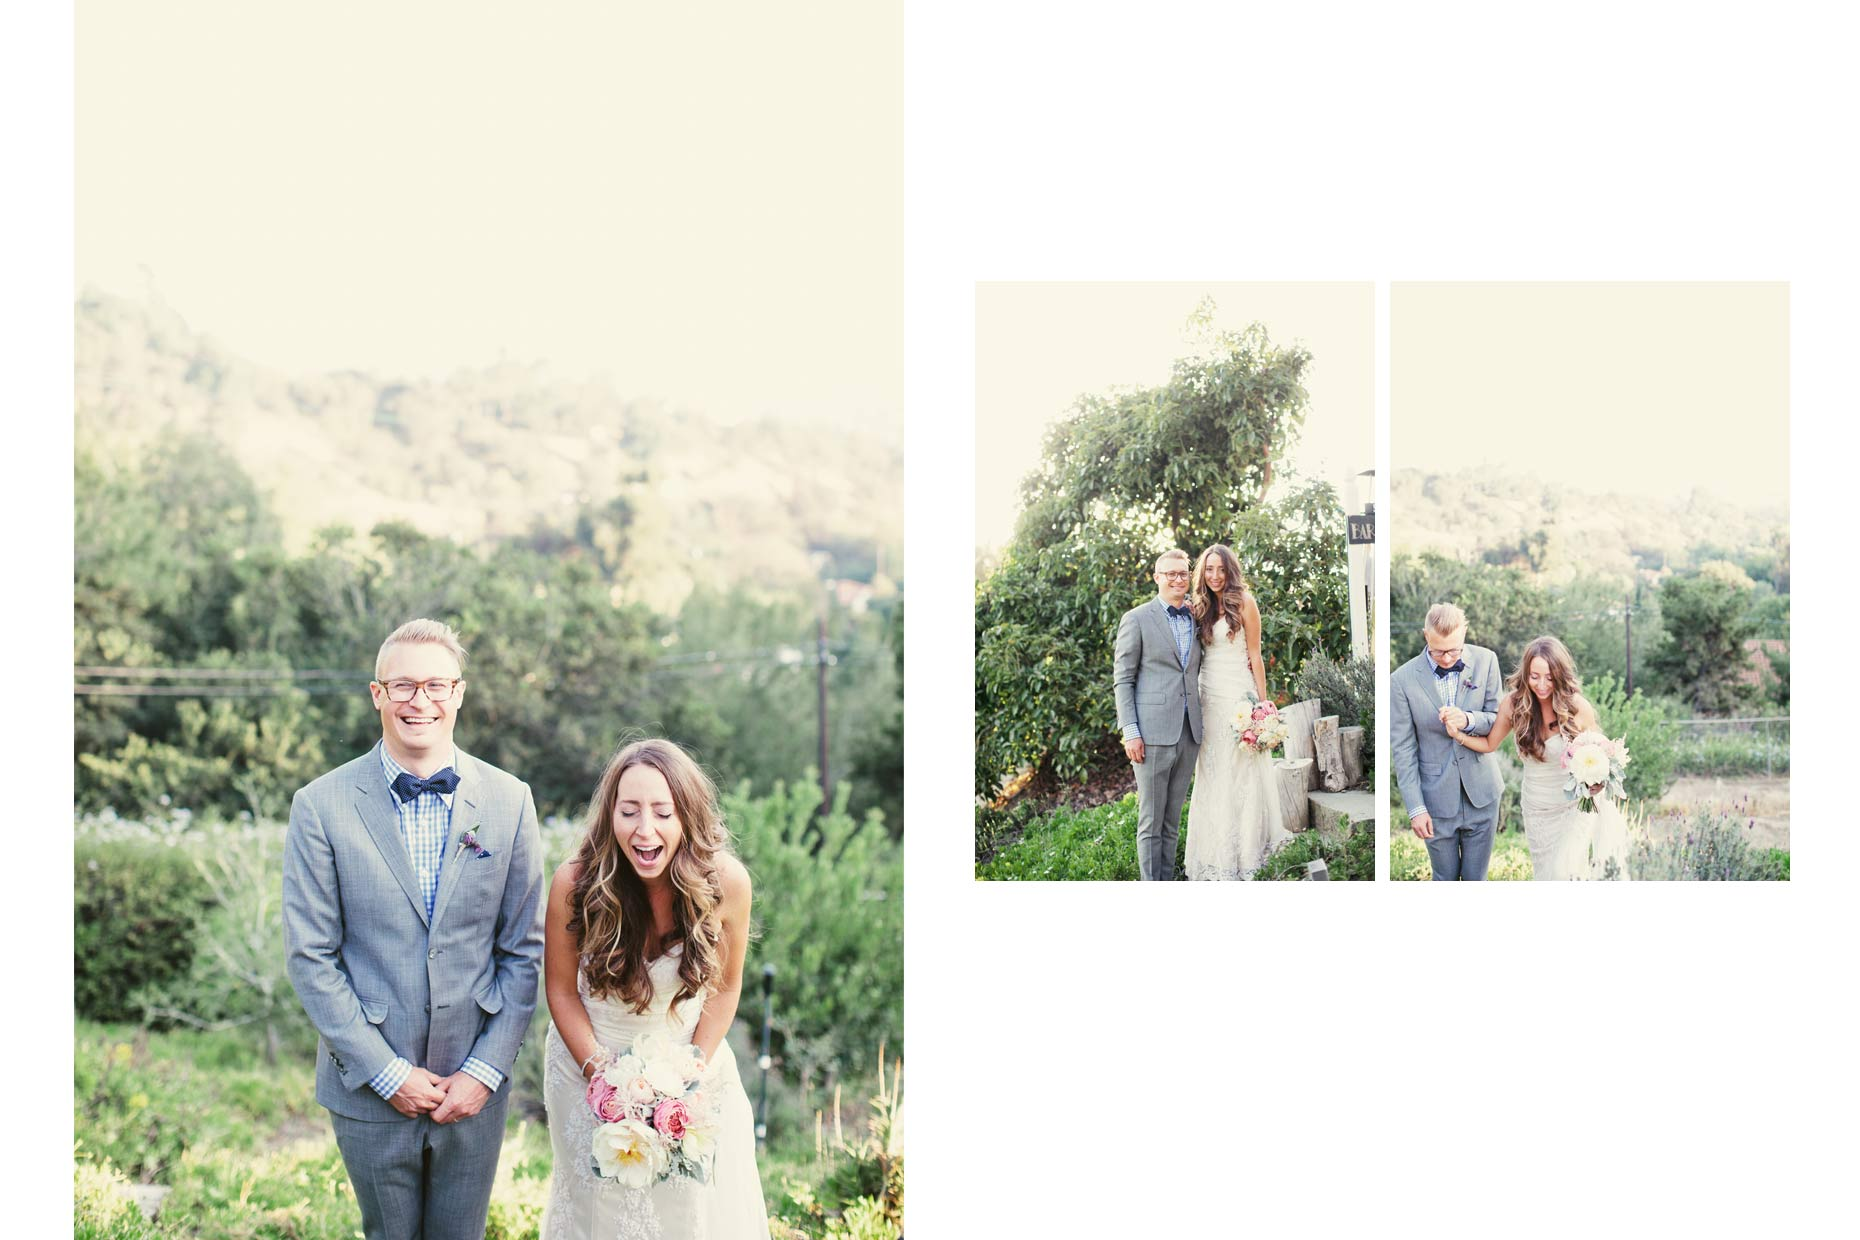 best creative wedding photographers in malibu-DIY-Backyard-Wedding-_-Pierre-olivier-Photography-2